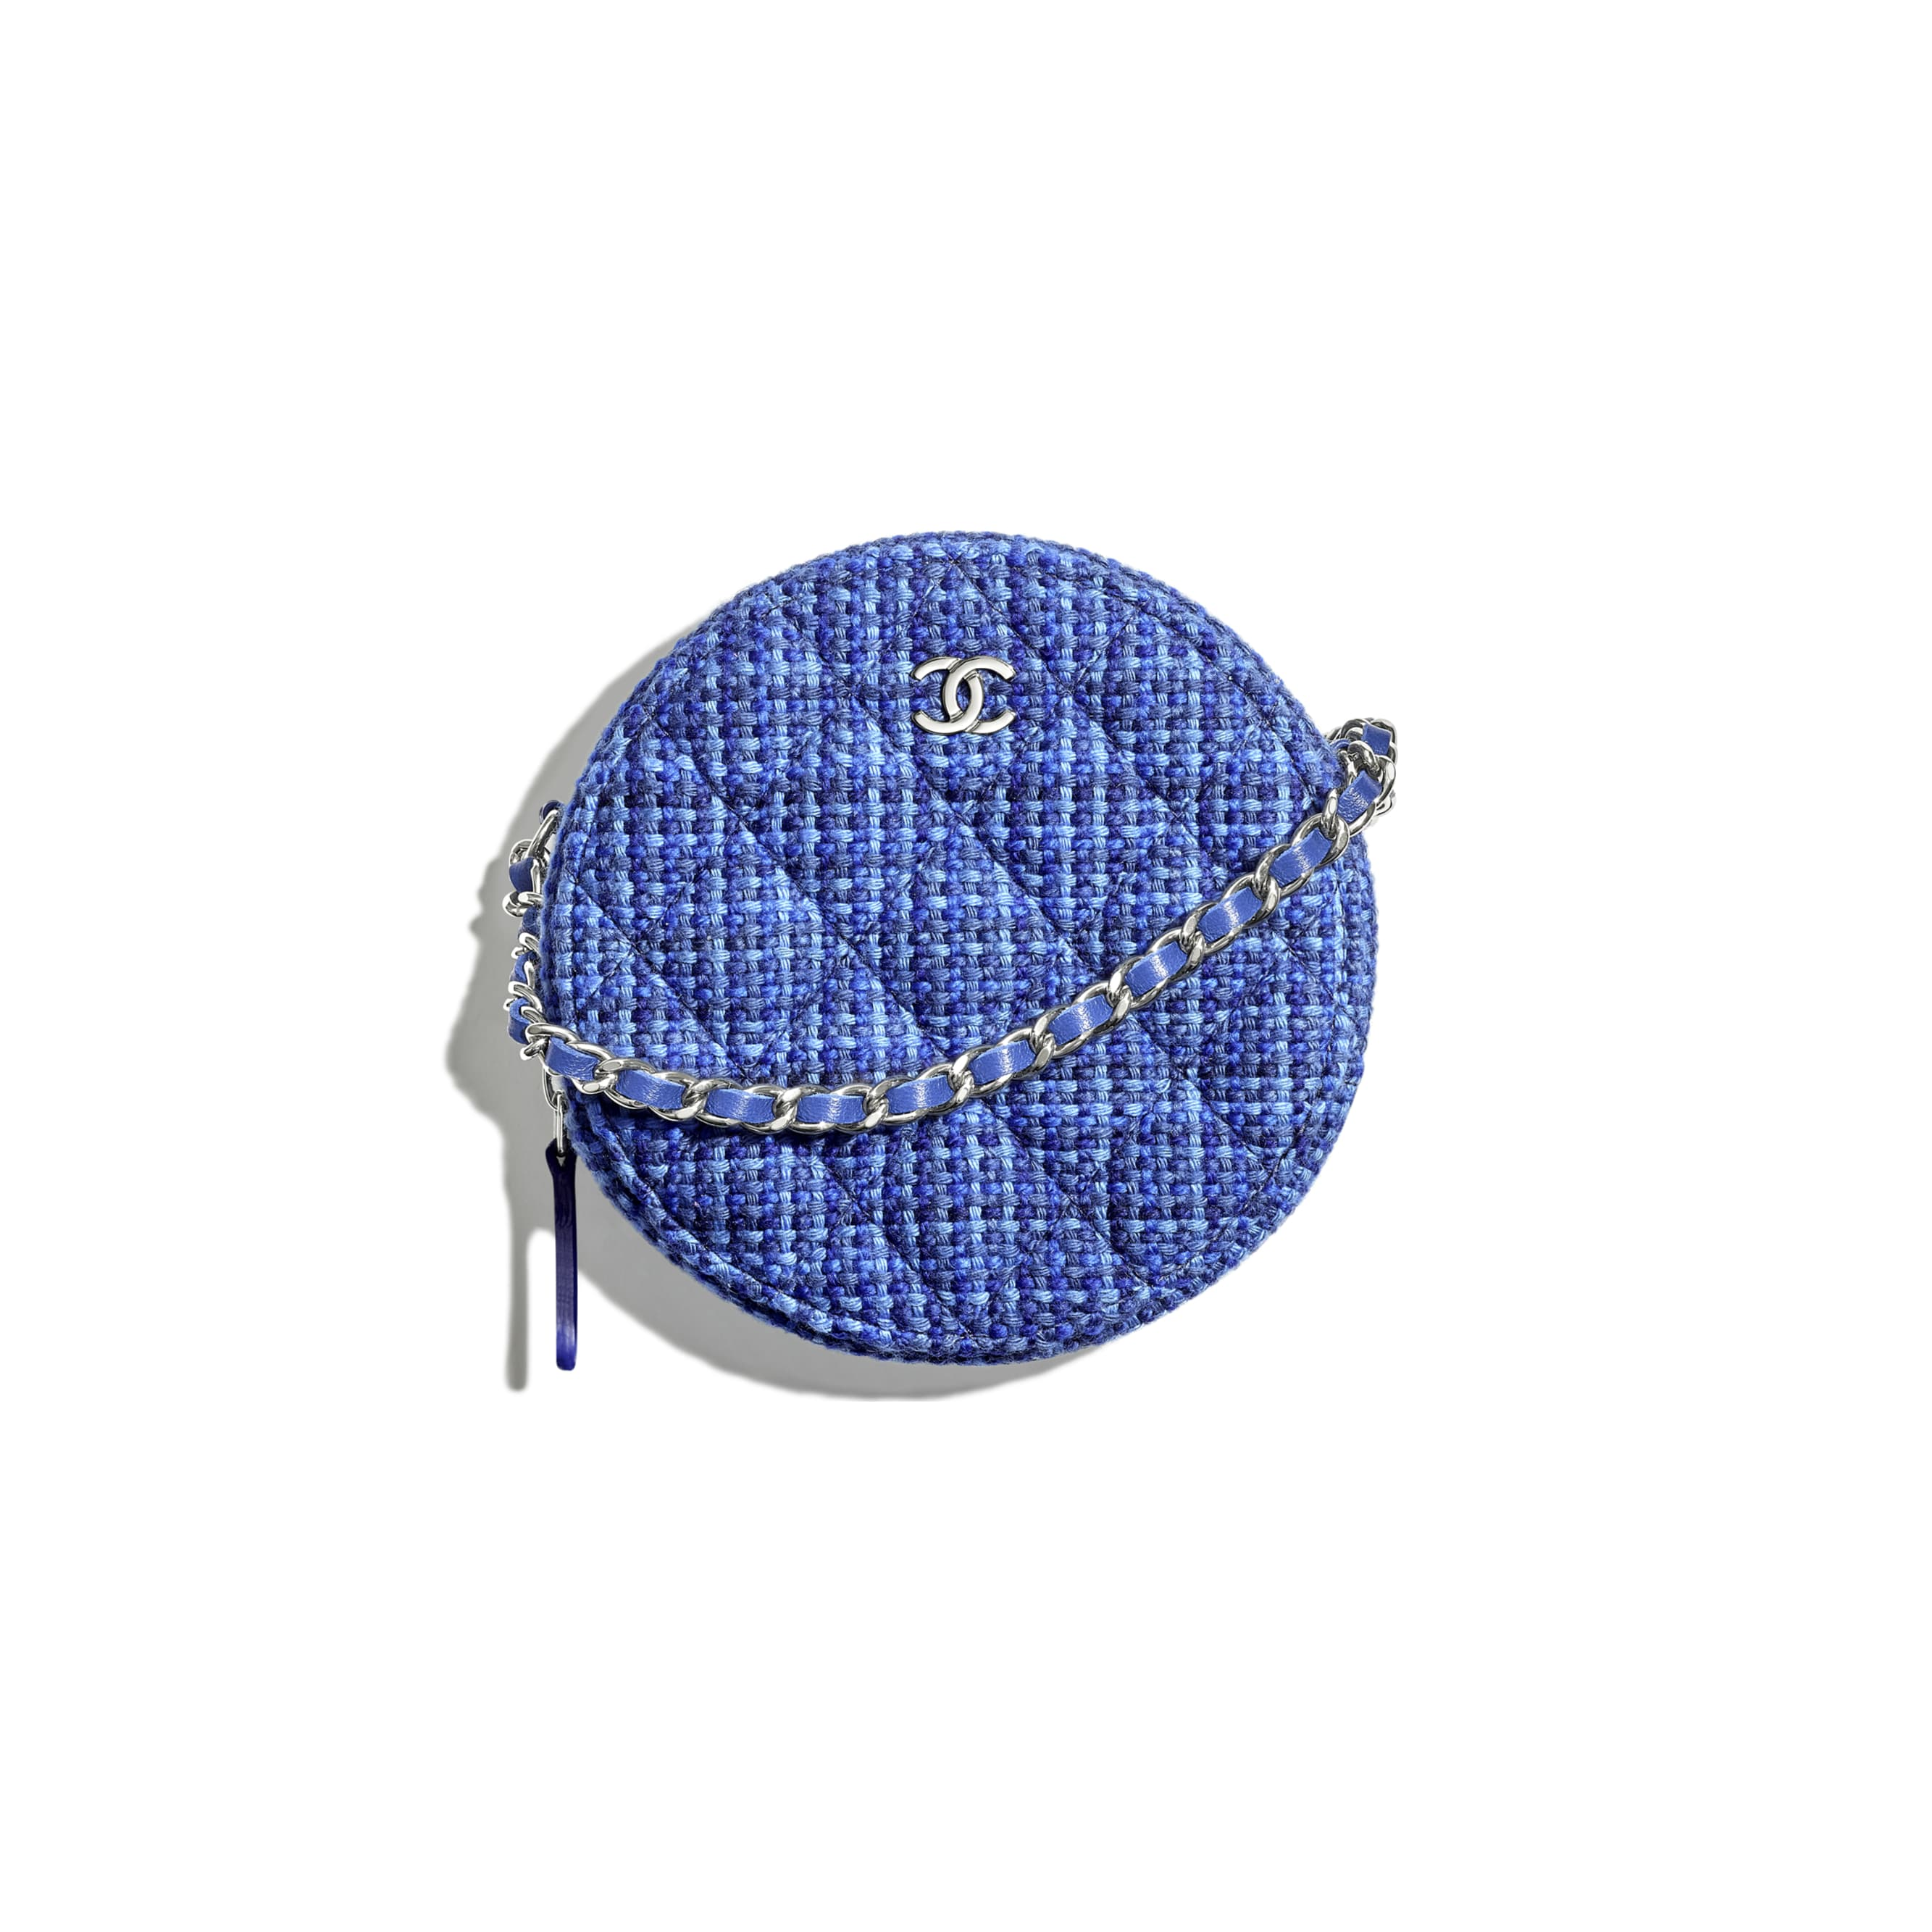 Classic Clutch with Chain - Navy Blue & Blue - Tweed & Silver-Tone Metal - CHANEL - Default view - see standard sized version